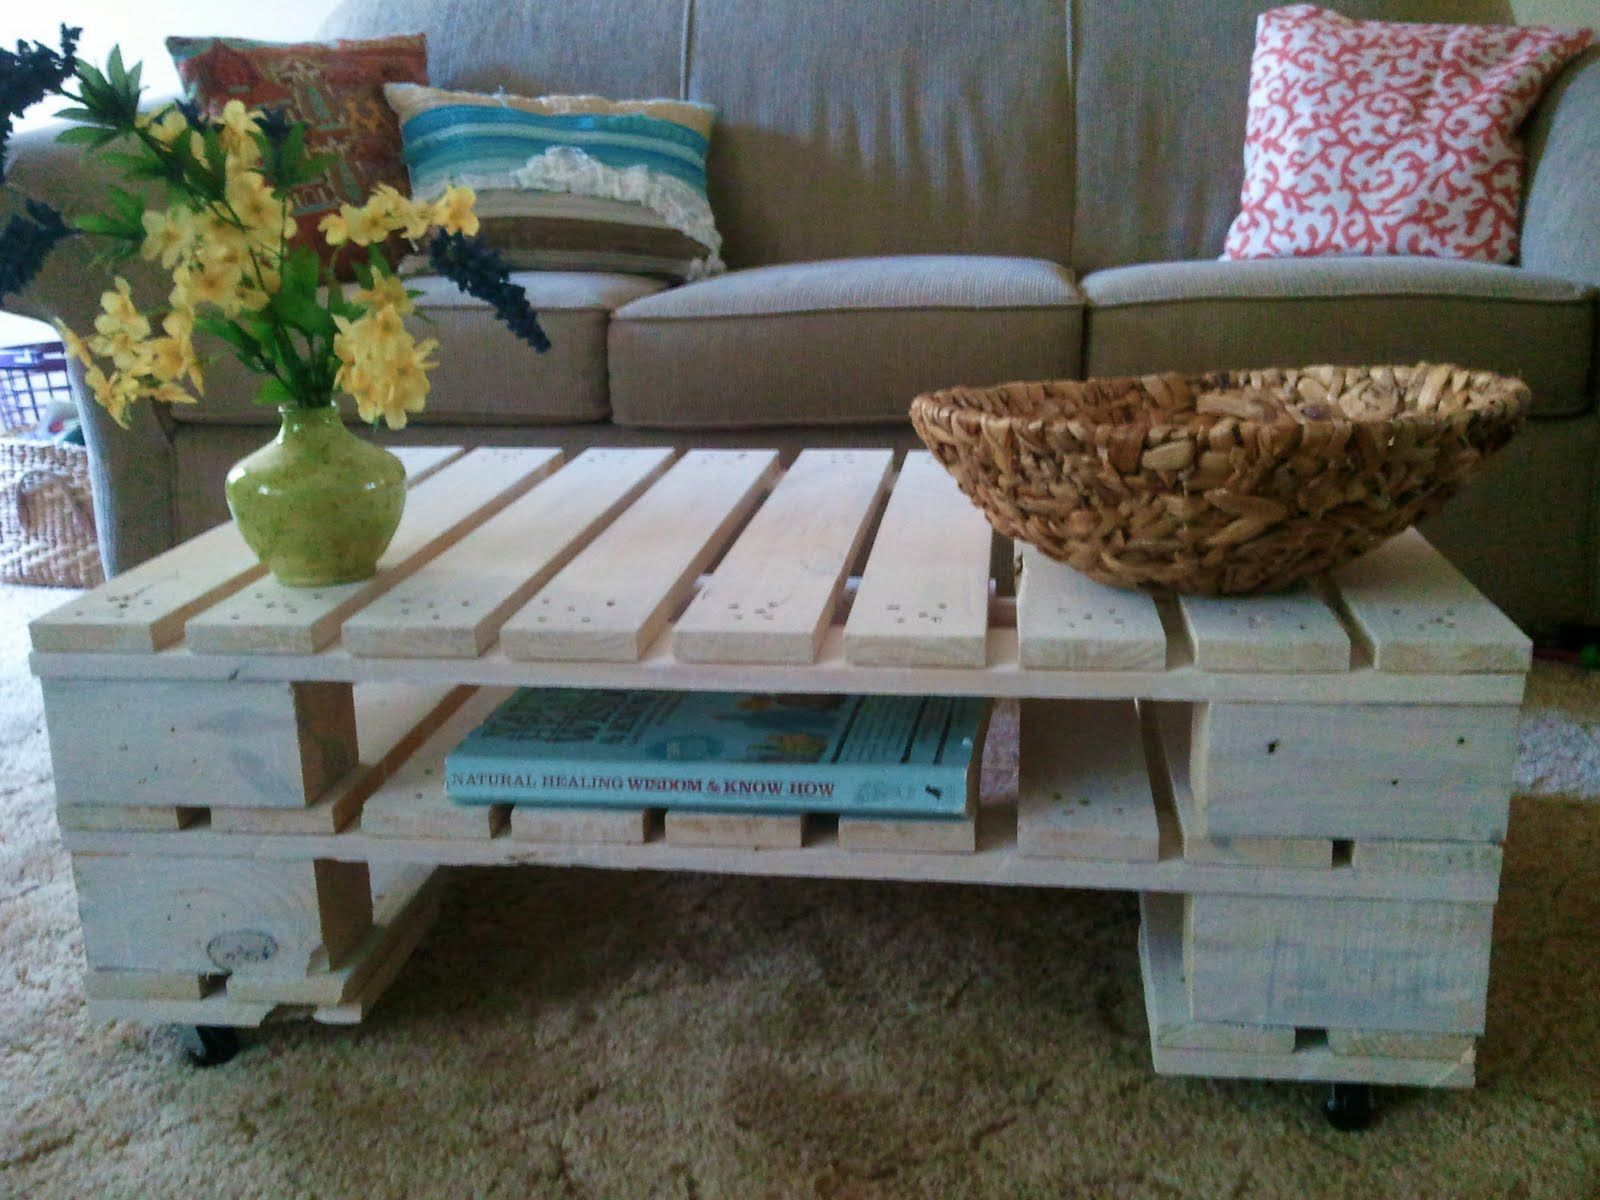 How to make a sofa table out of floor boards - Simple Pallet Coffee Table